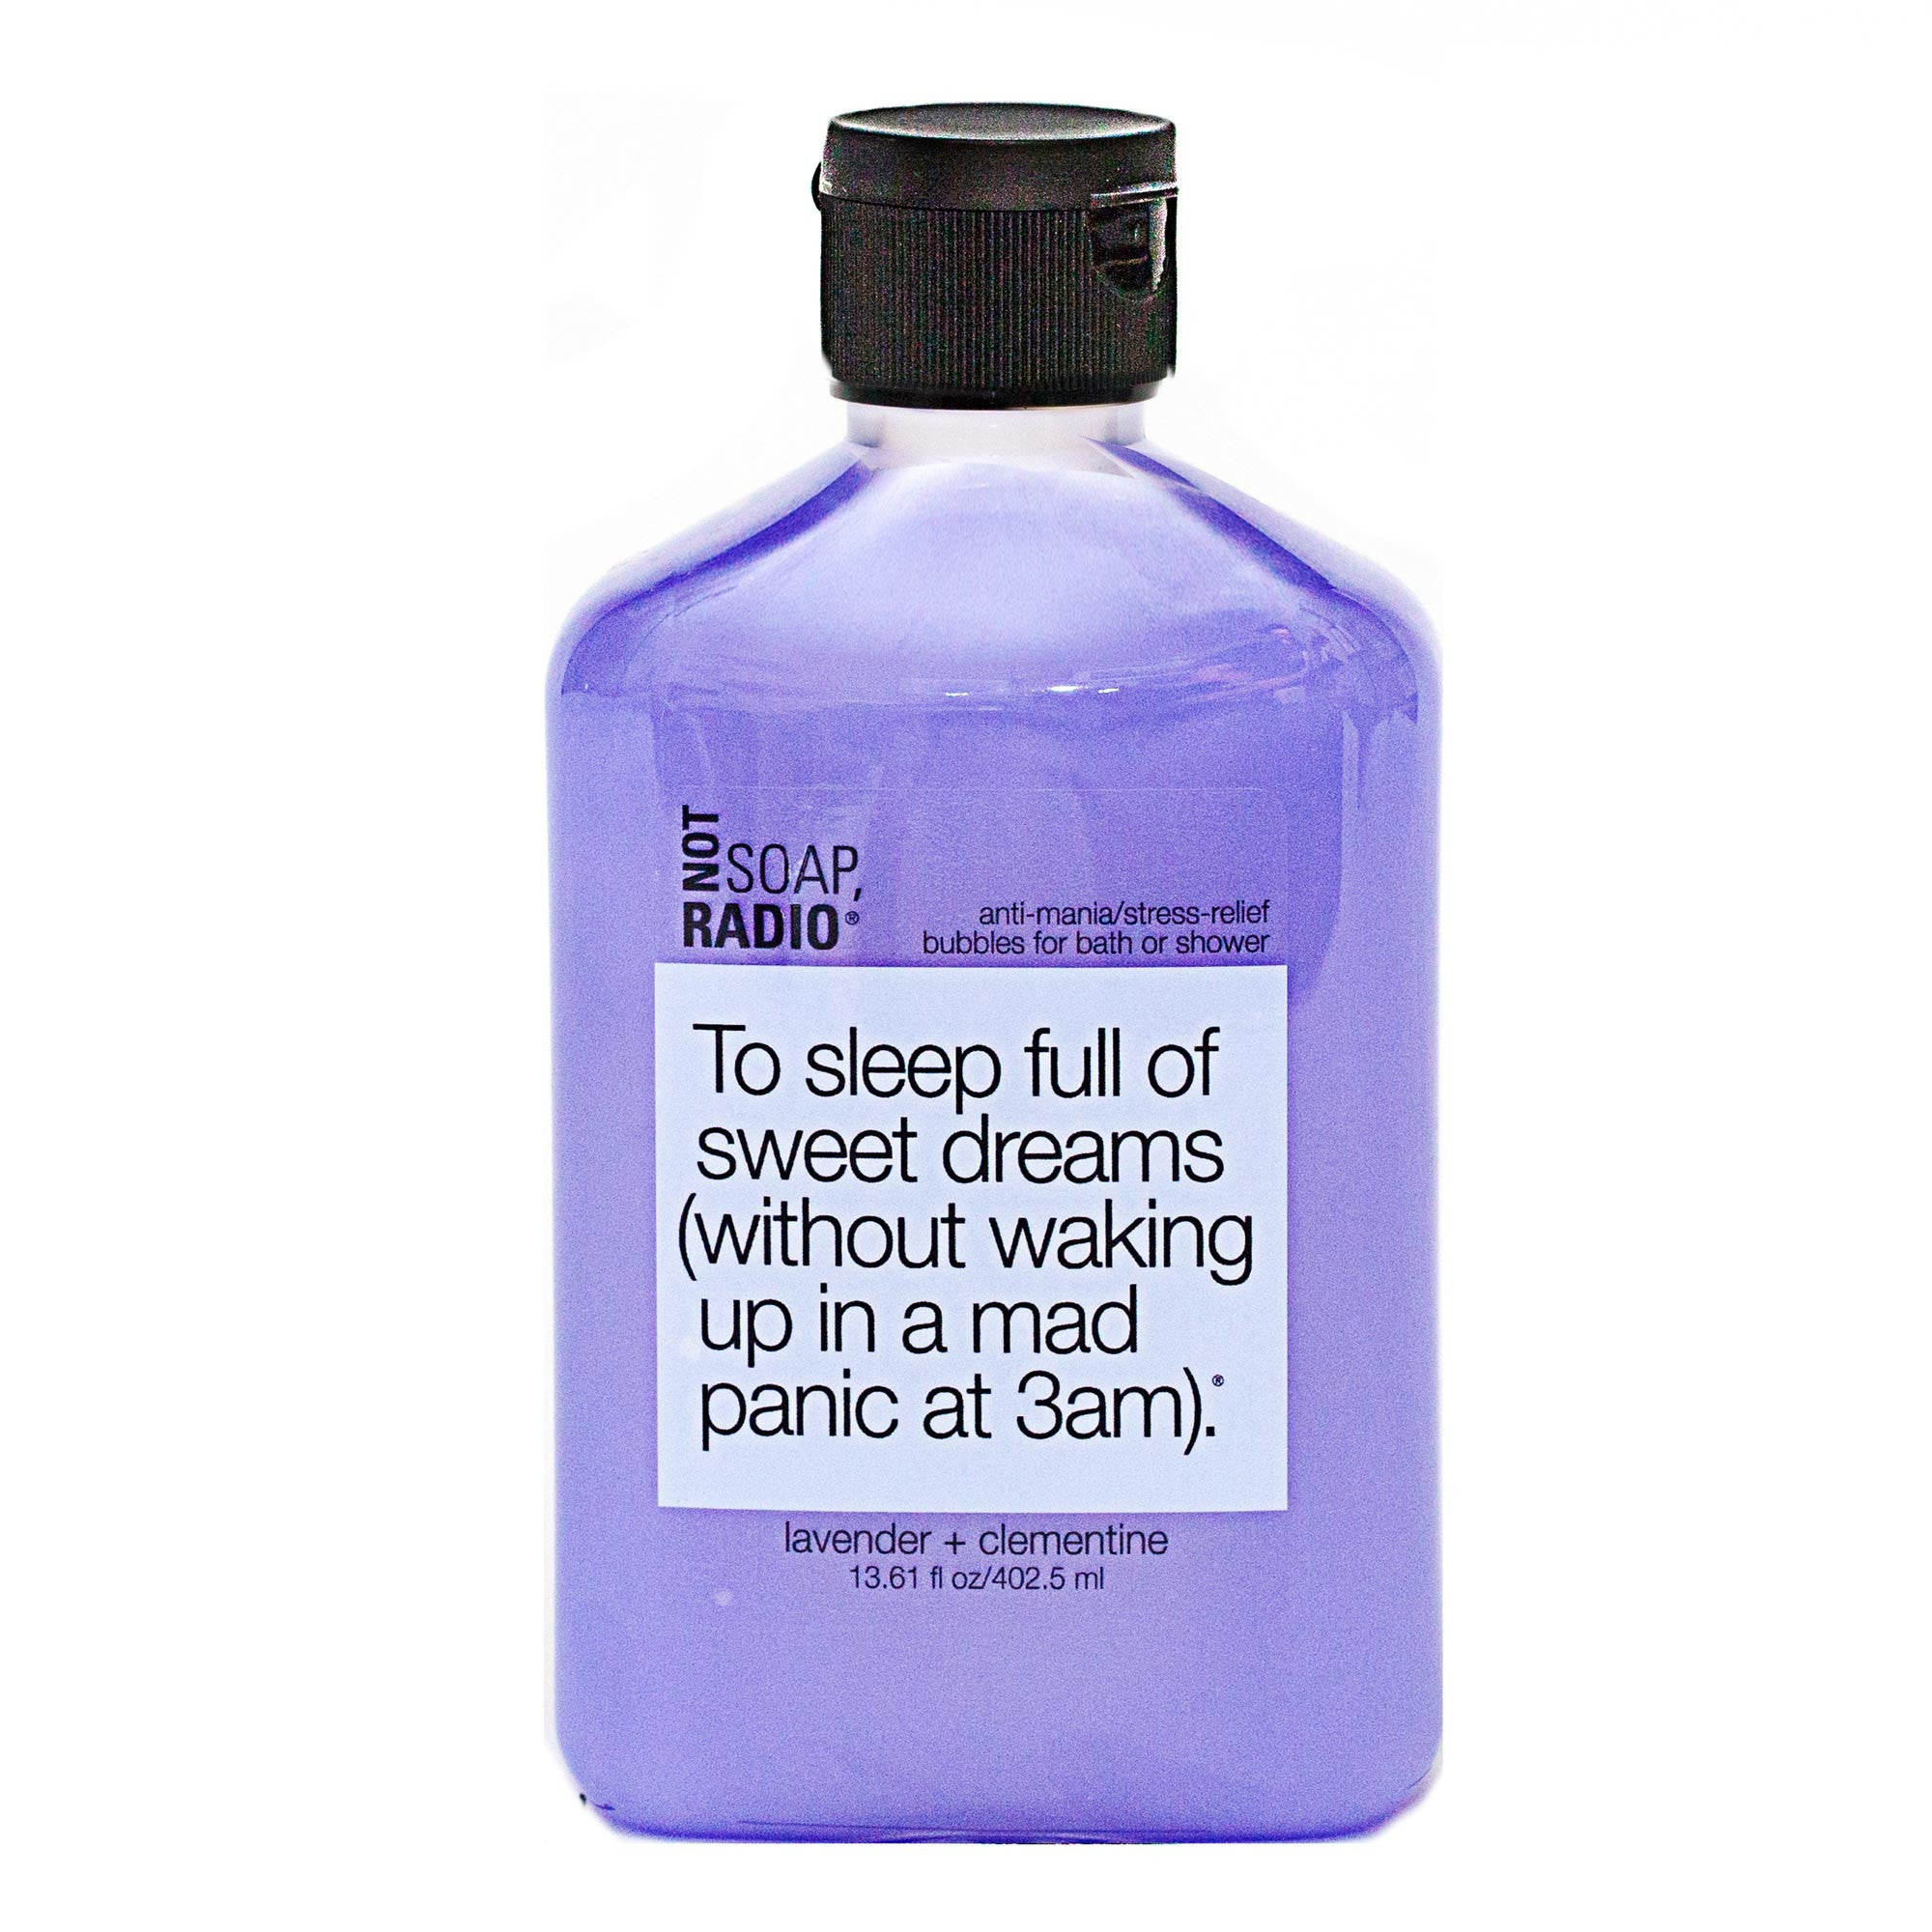 To sleep full of sweet dreams (without waking up in a mad panic at 3am). - Not Soap Radio Bubbles for bath/shower